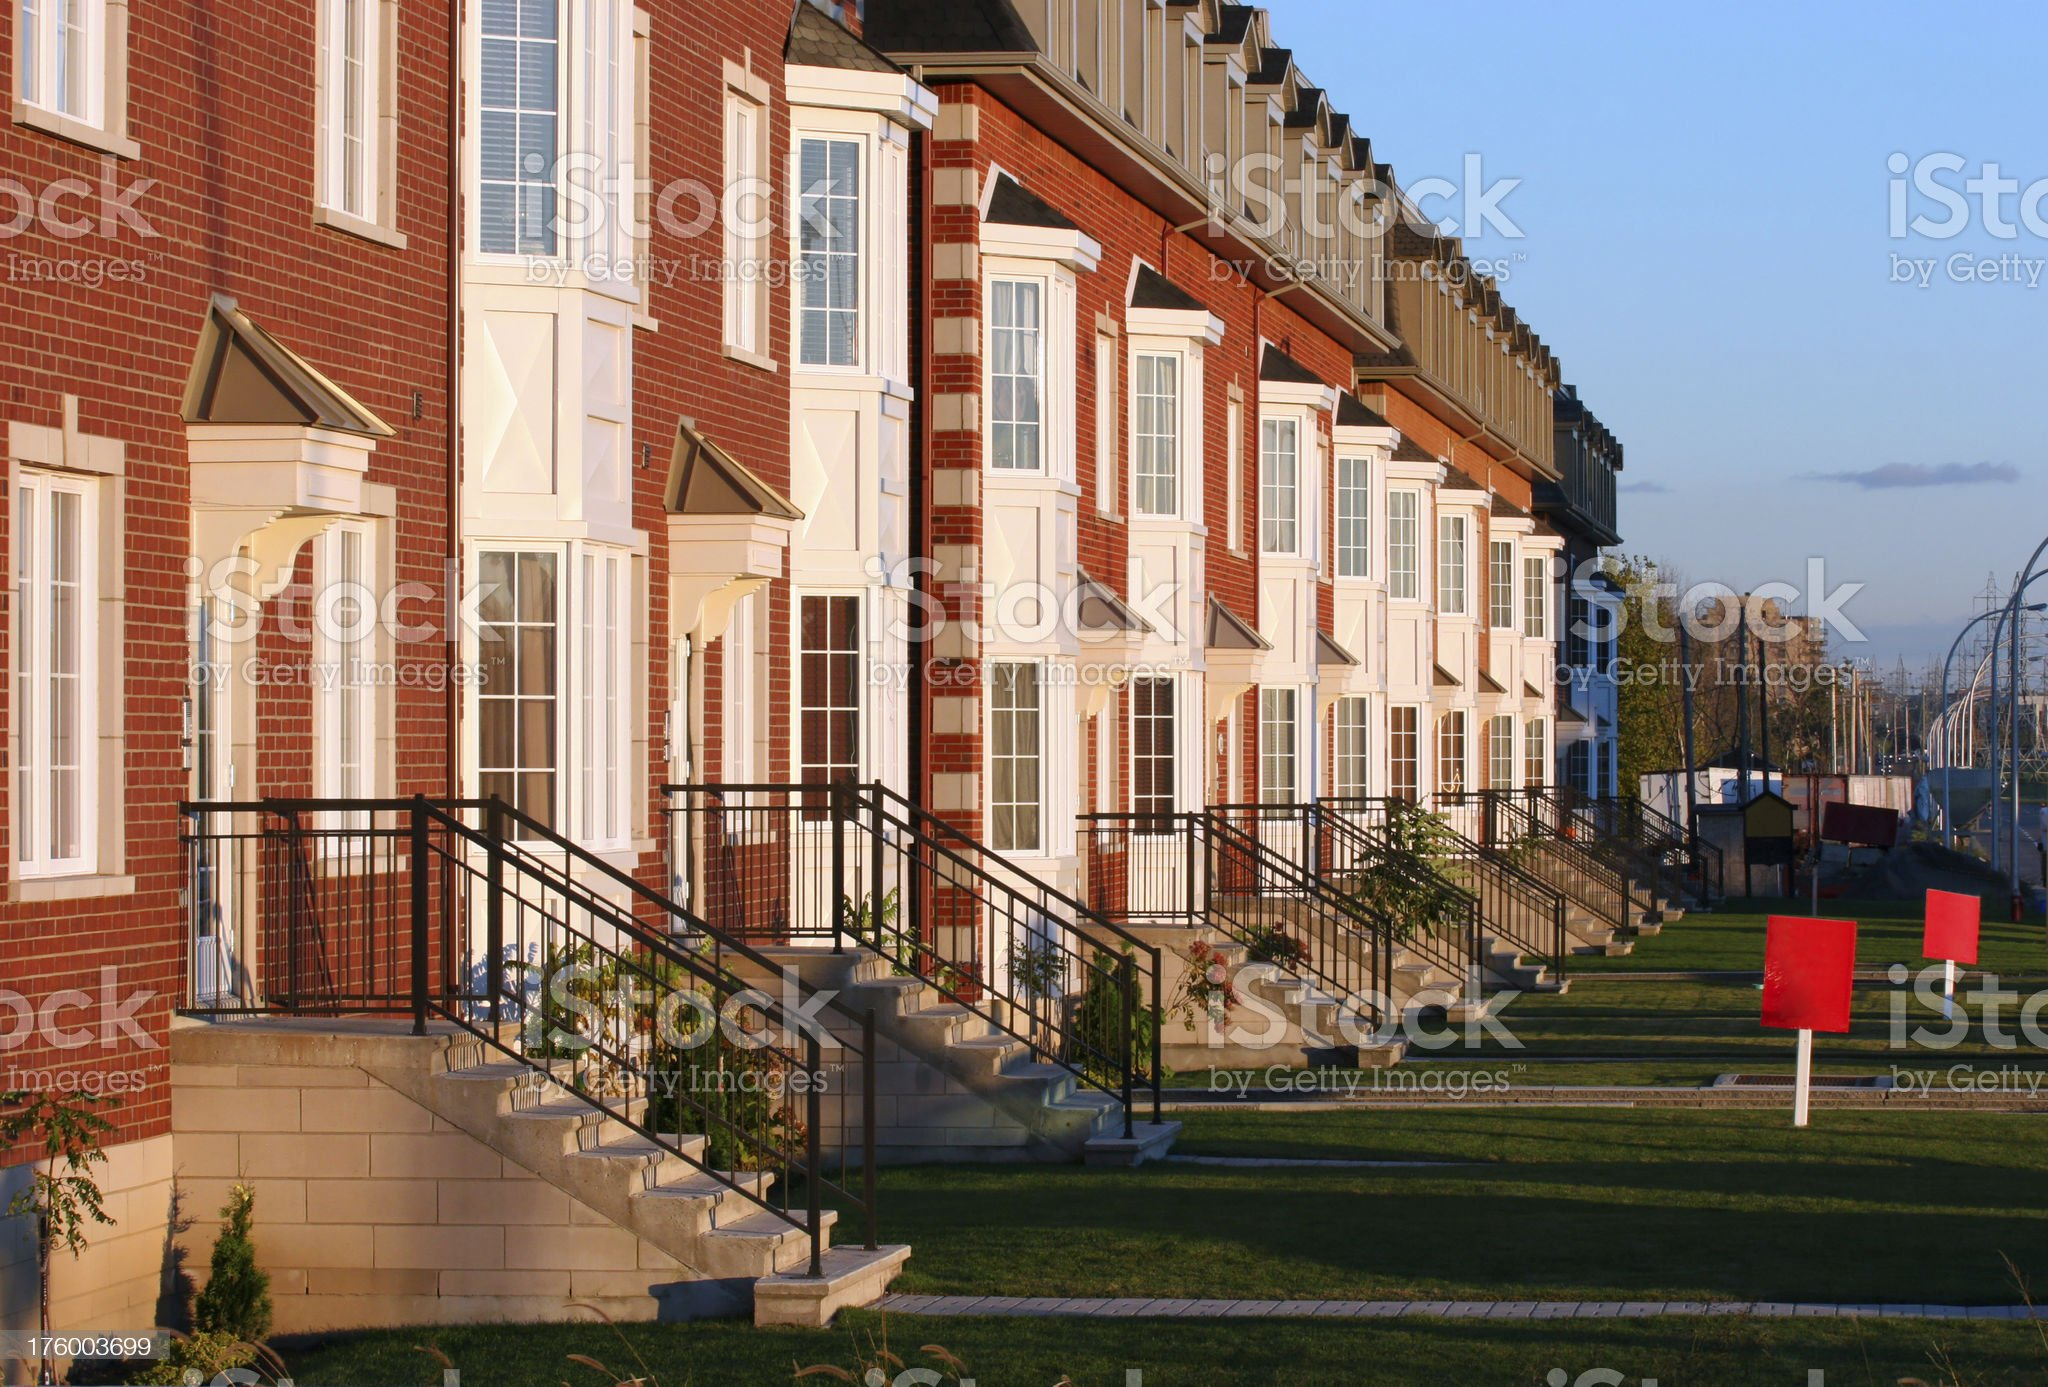 Condominiums for Sale royalty-free stock photo